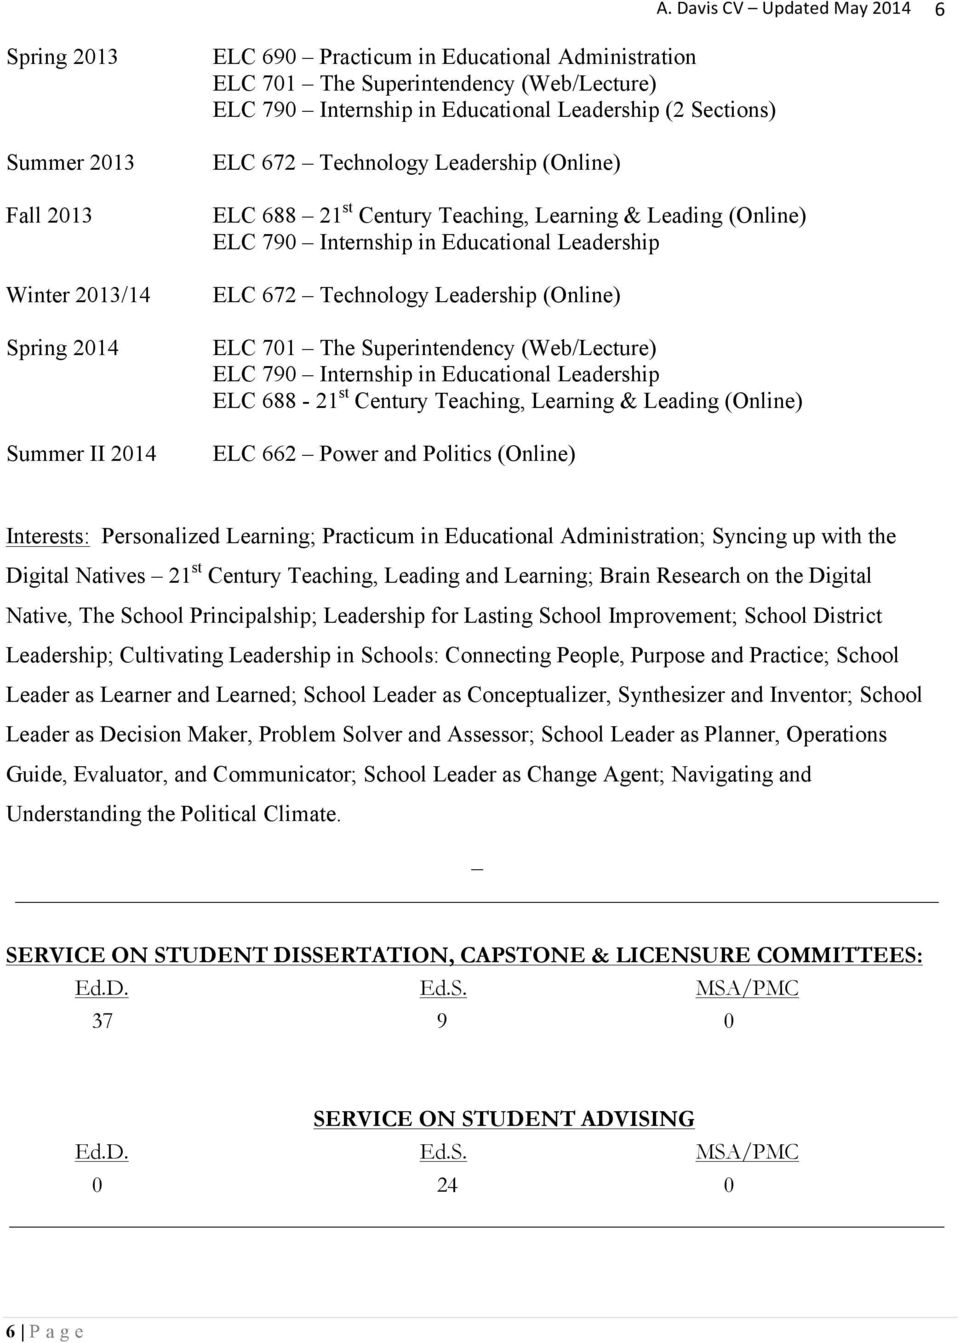 Leadership ELC 672 Technology Leadership (Online) ELC 701 The Superintendency (Web/Lecture) ELC 790 Internship in Educational Leadership ELC 688-21 st Century Teaching, Learning & Leading (Online)